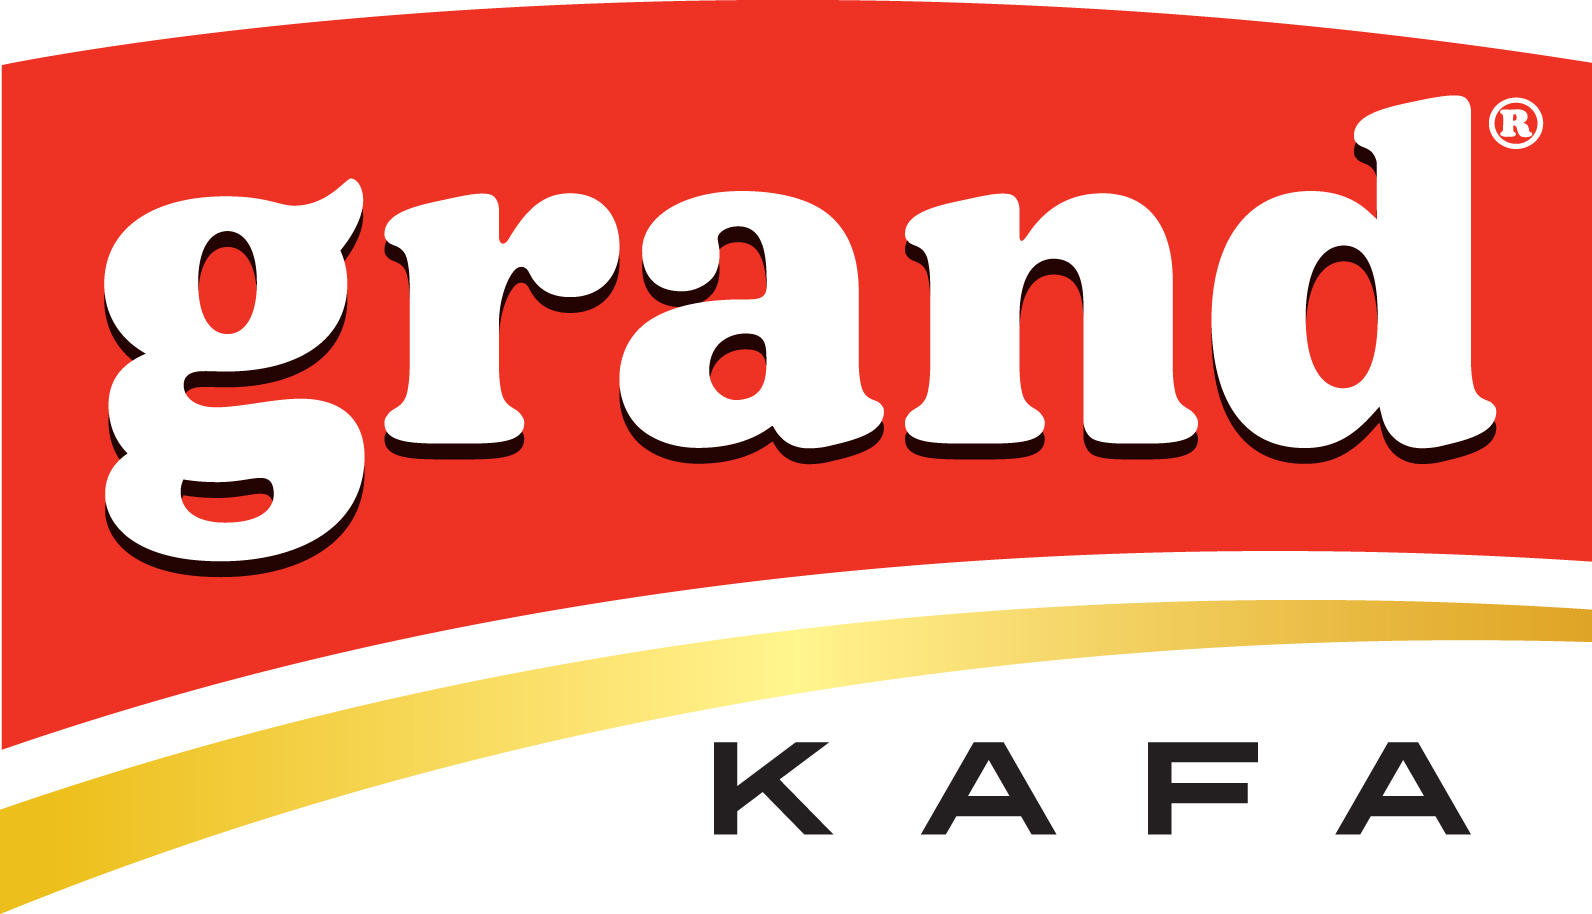 Grand kafa korporativni logotip - CMYK copy